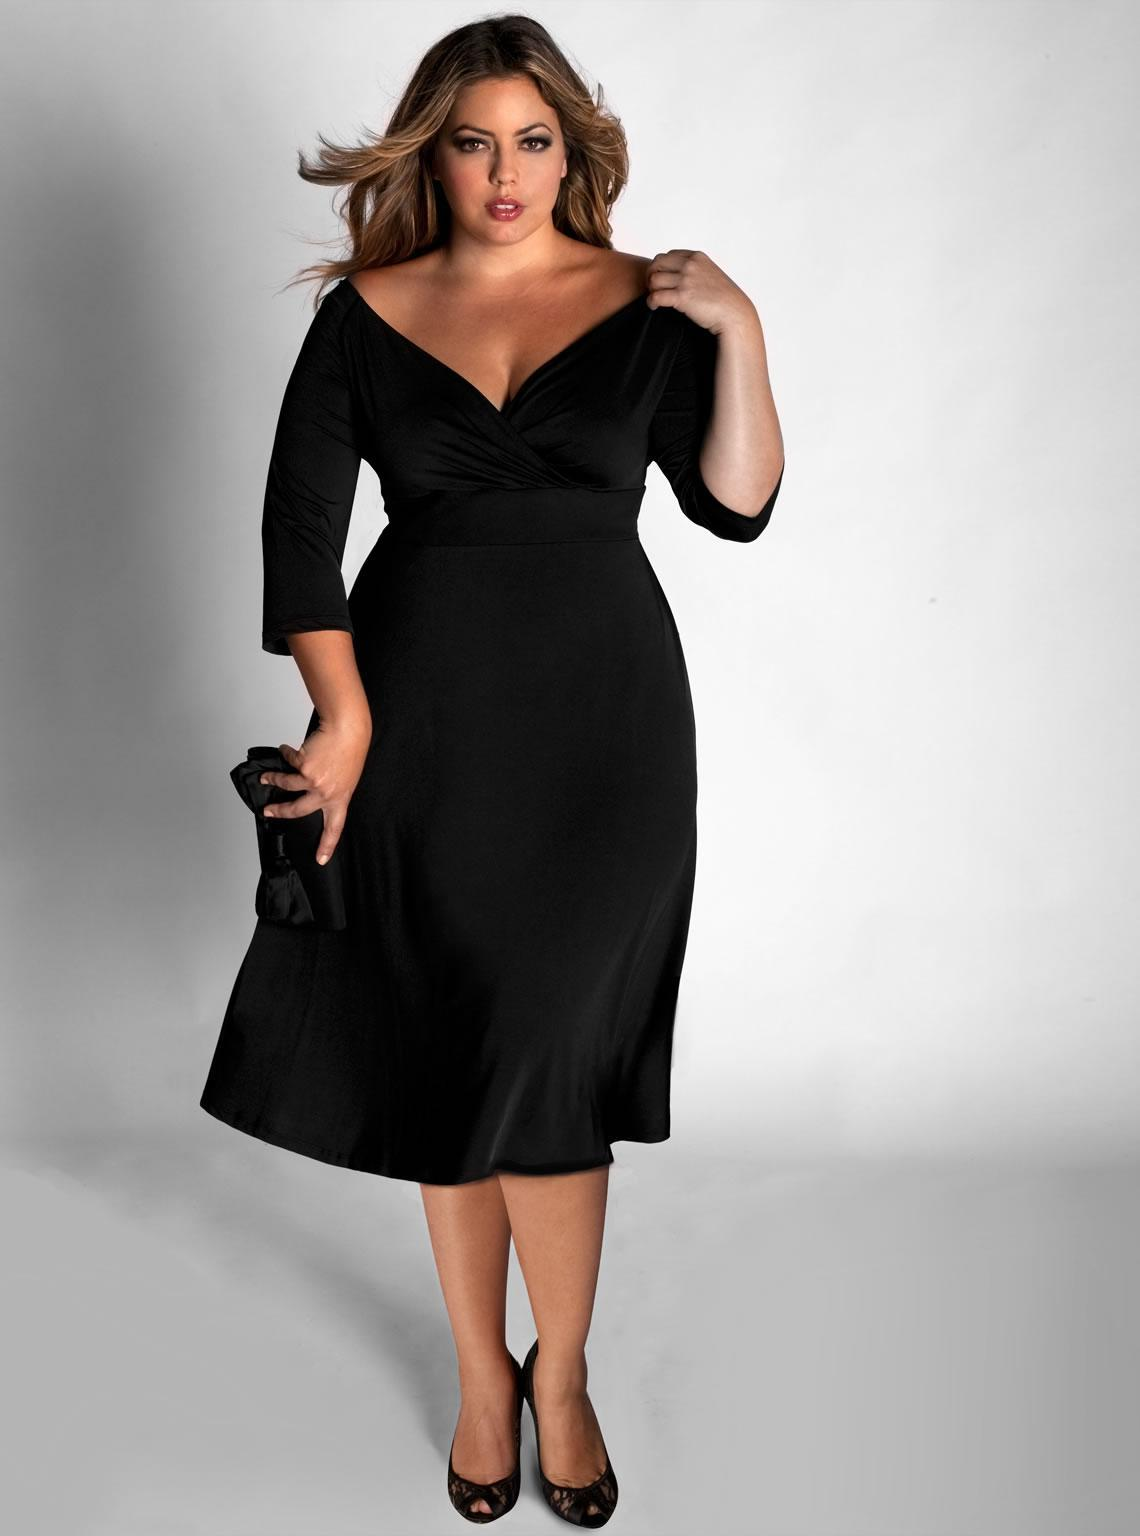 Long Sleeve Black Dress Plus Size Good Dresses